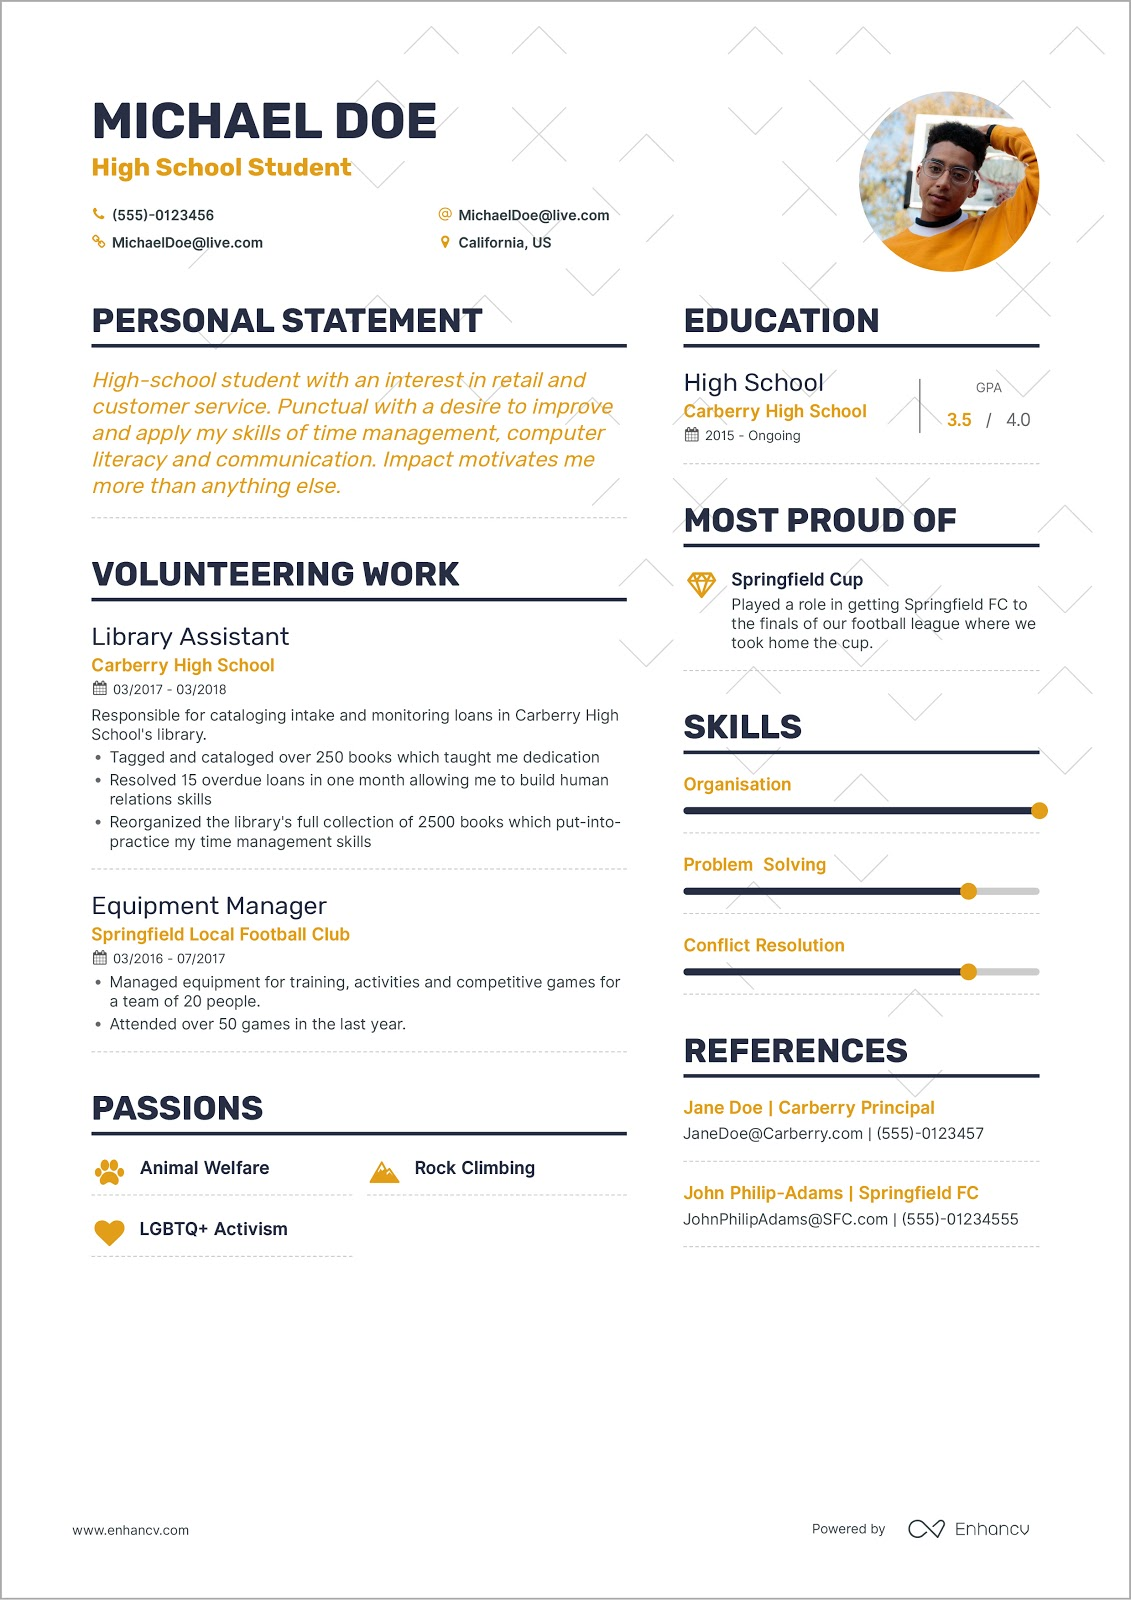 to write your first job resume for michaeldoeresume firstresume professional web designer Resume Write A Resume For A Job